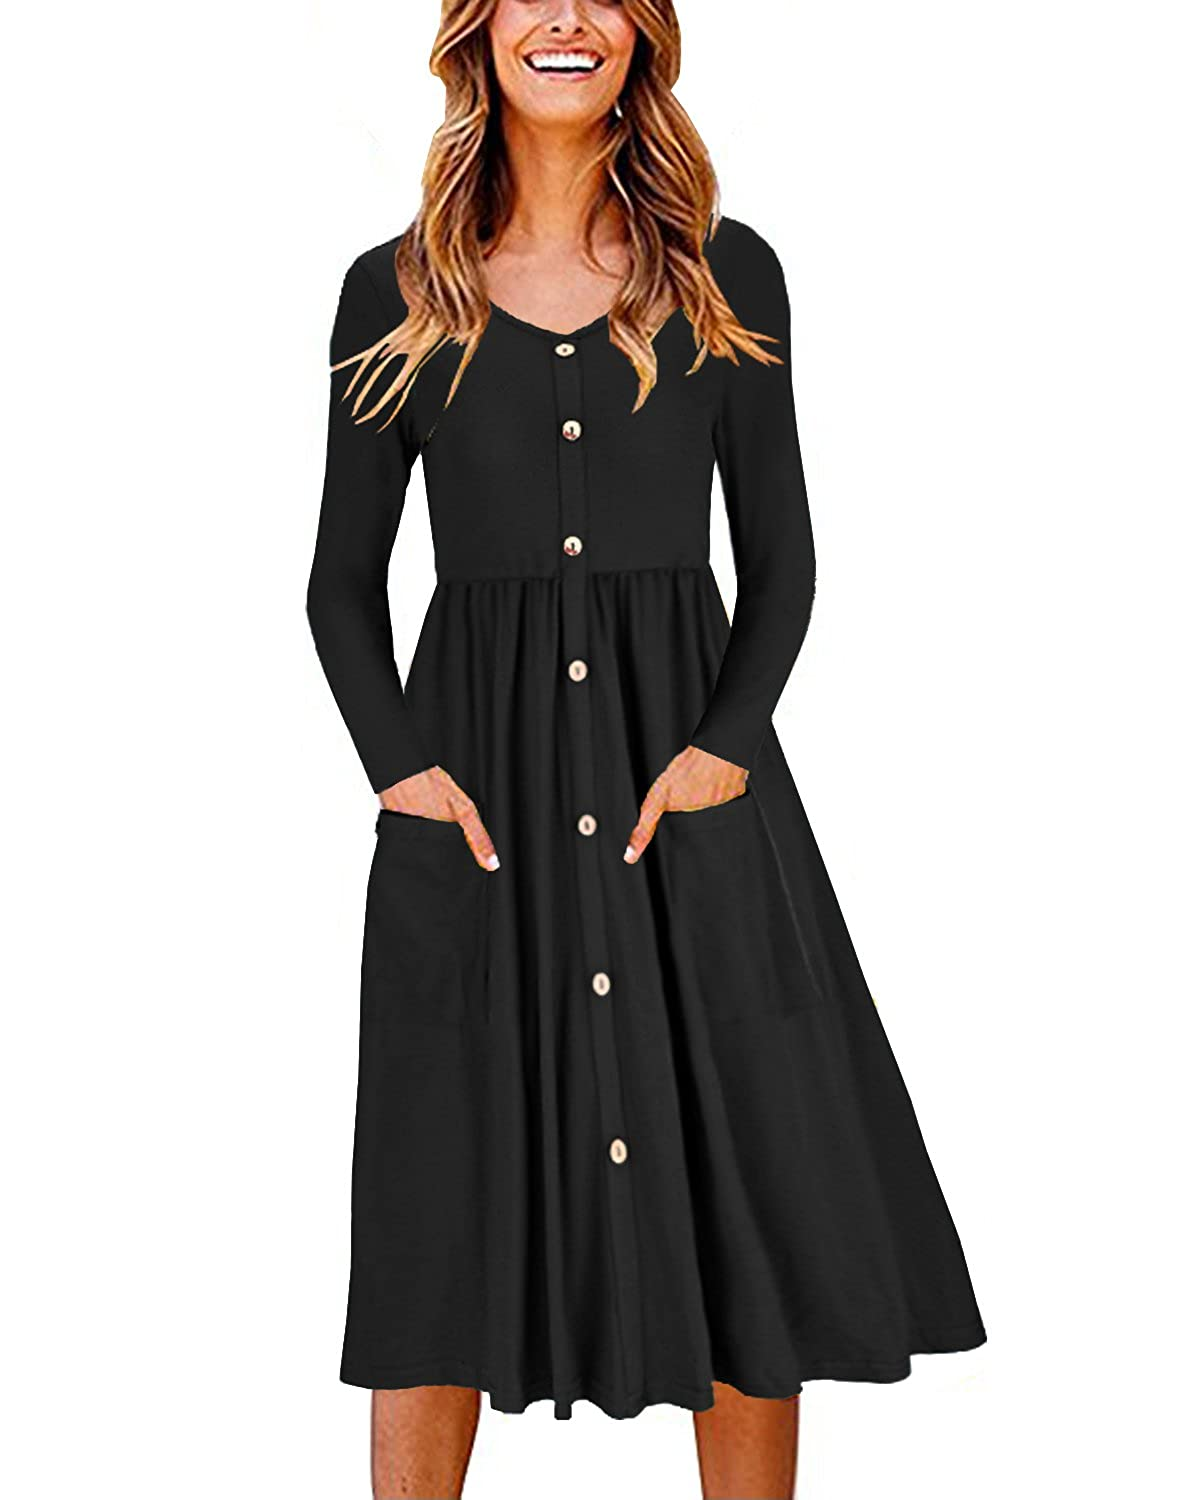 be6f4d285613 OUGES Women's Long Sleeve V Neck Button Down Skater Dress with Pockets at  Amazon Women's Clothing store: